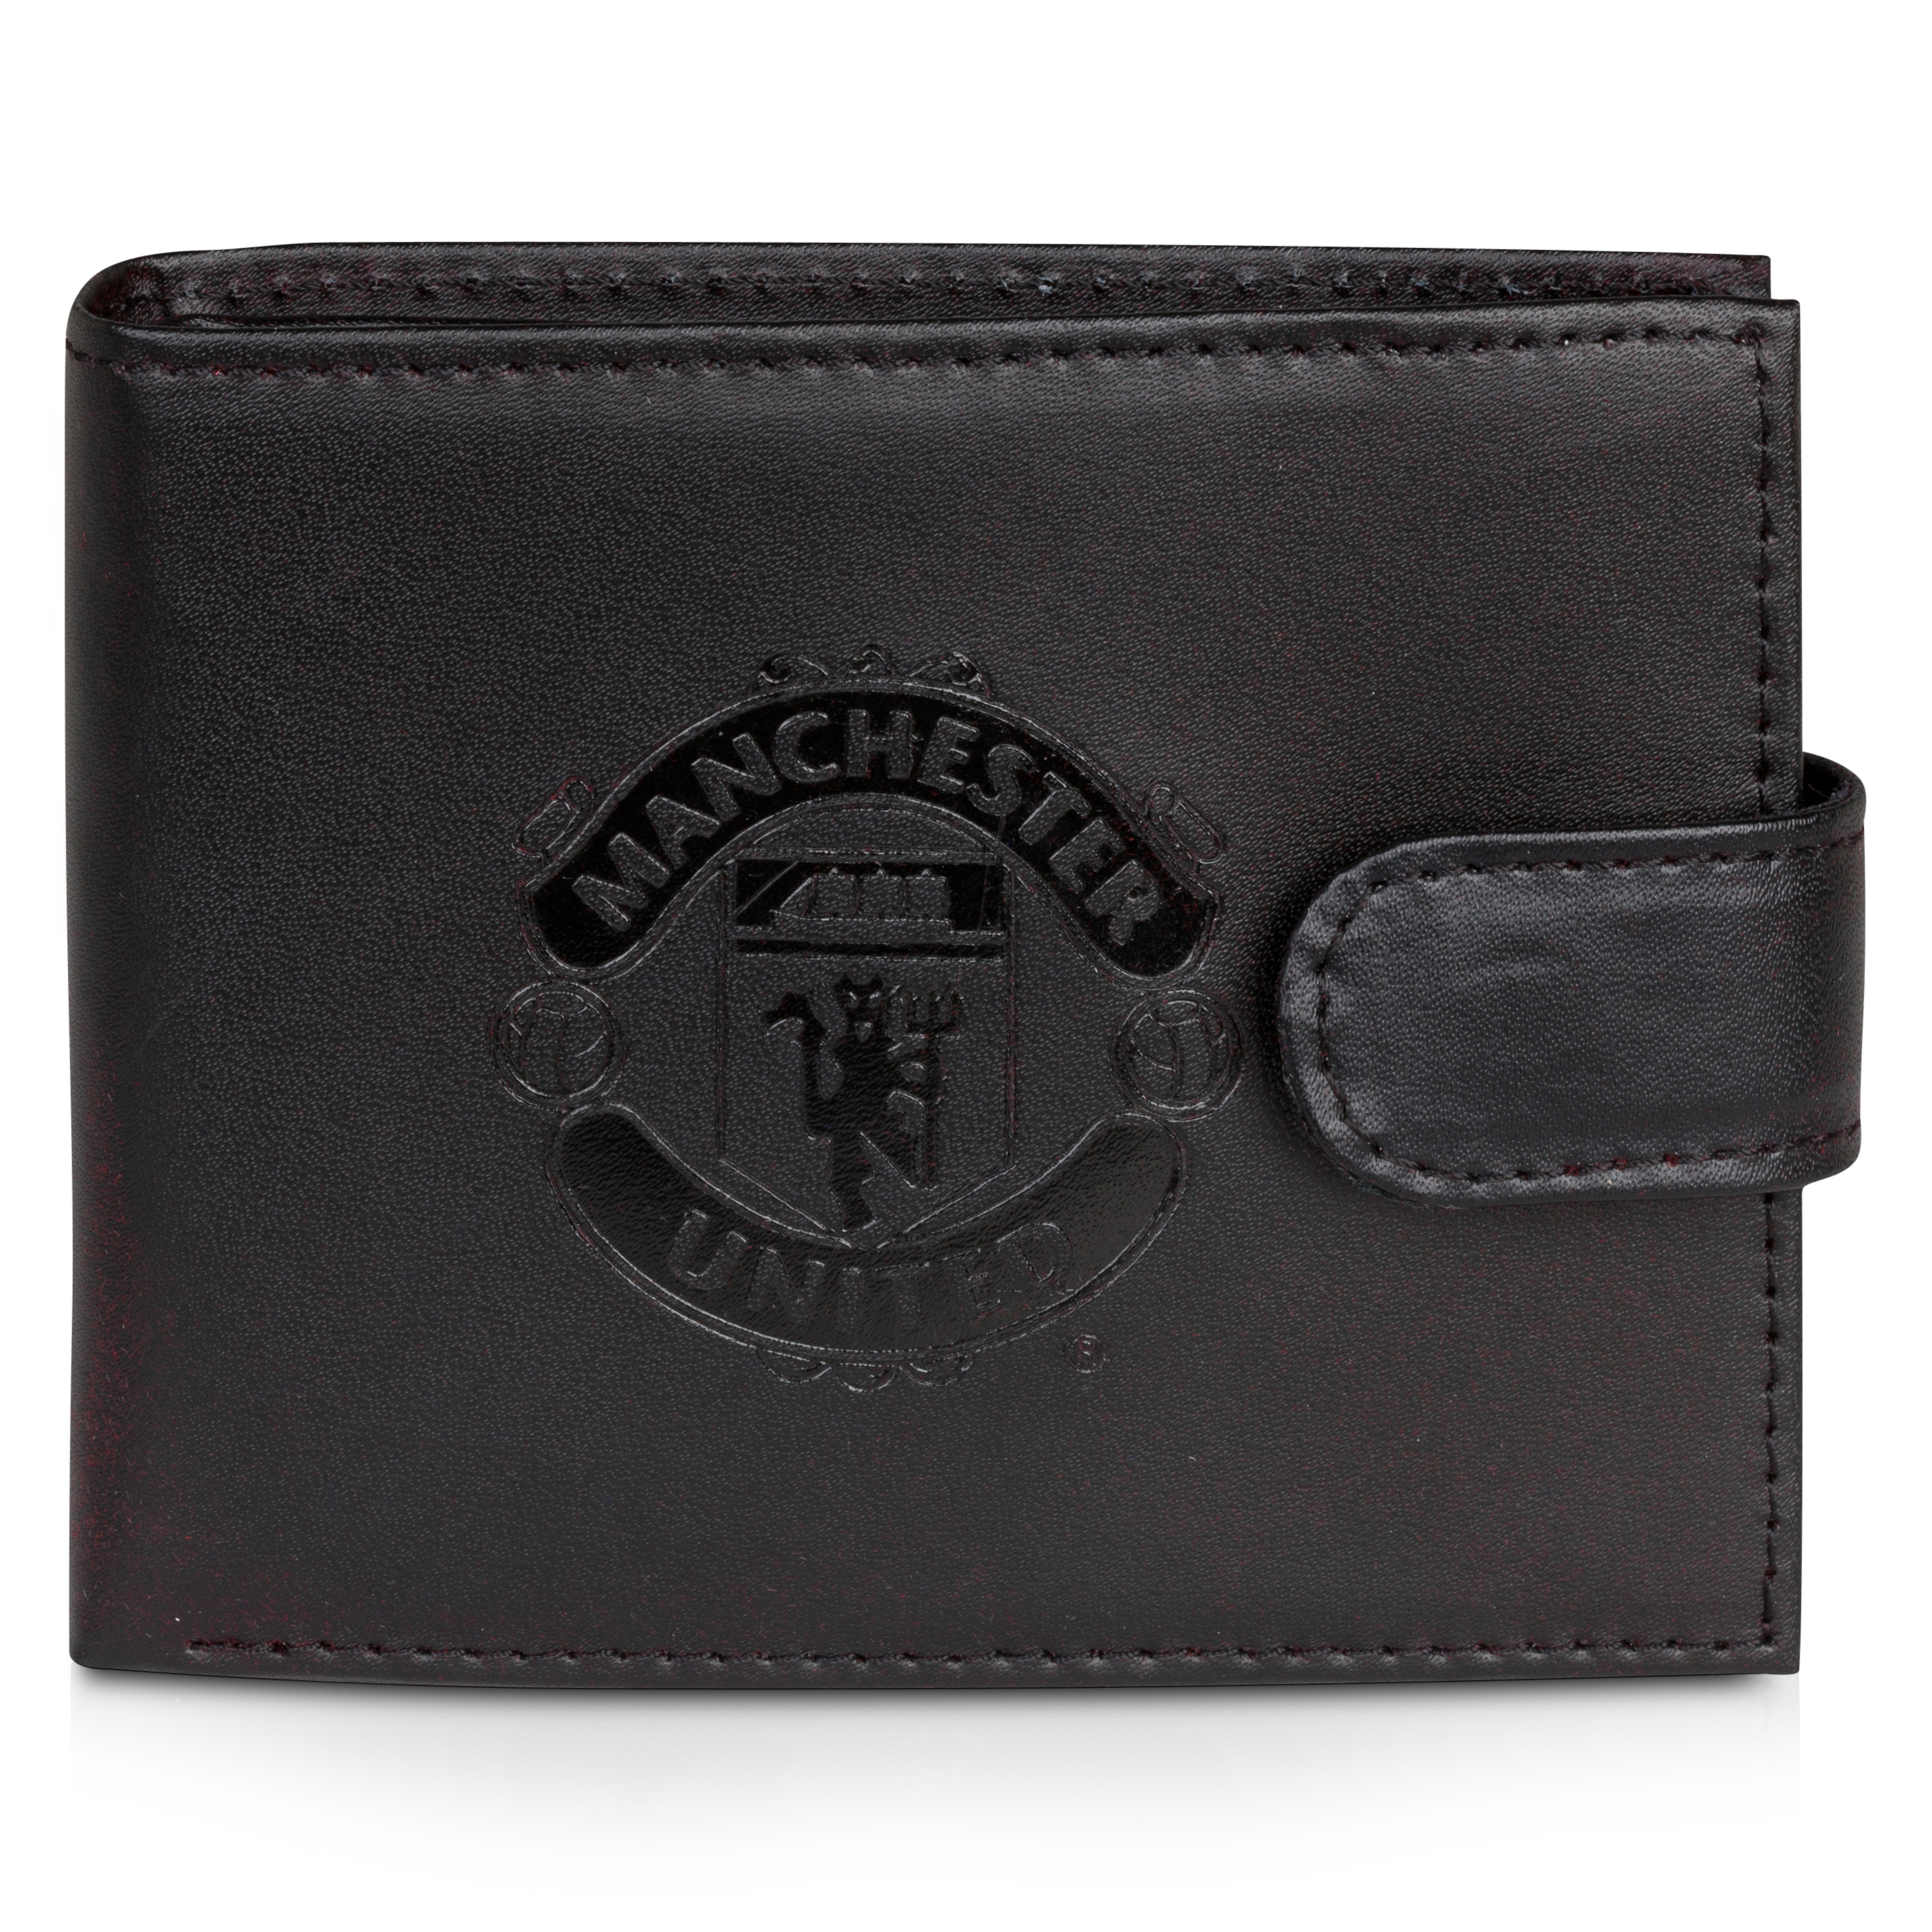 Manchester United Leather Wallet